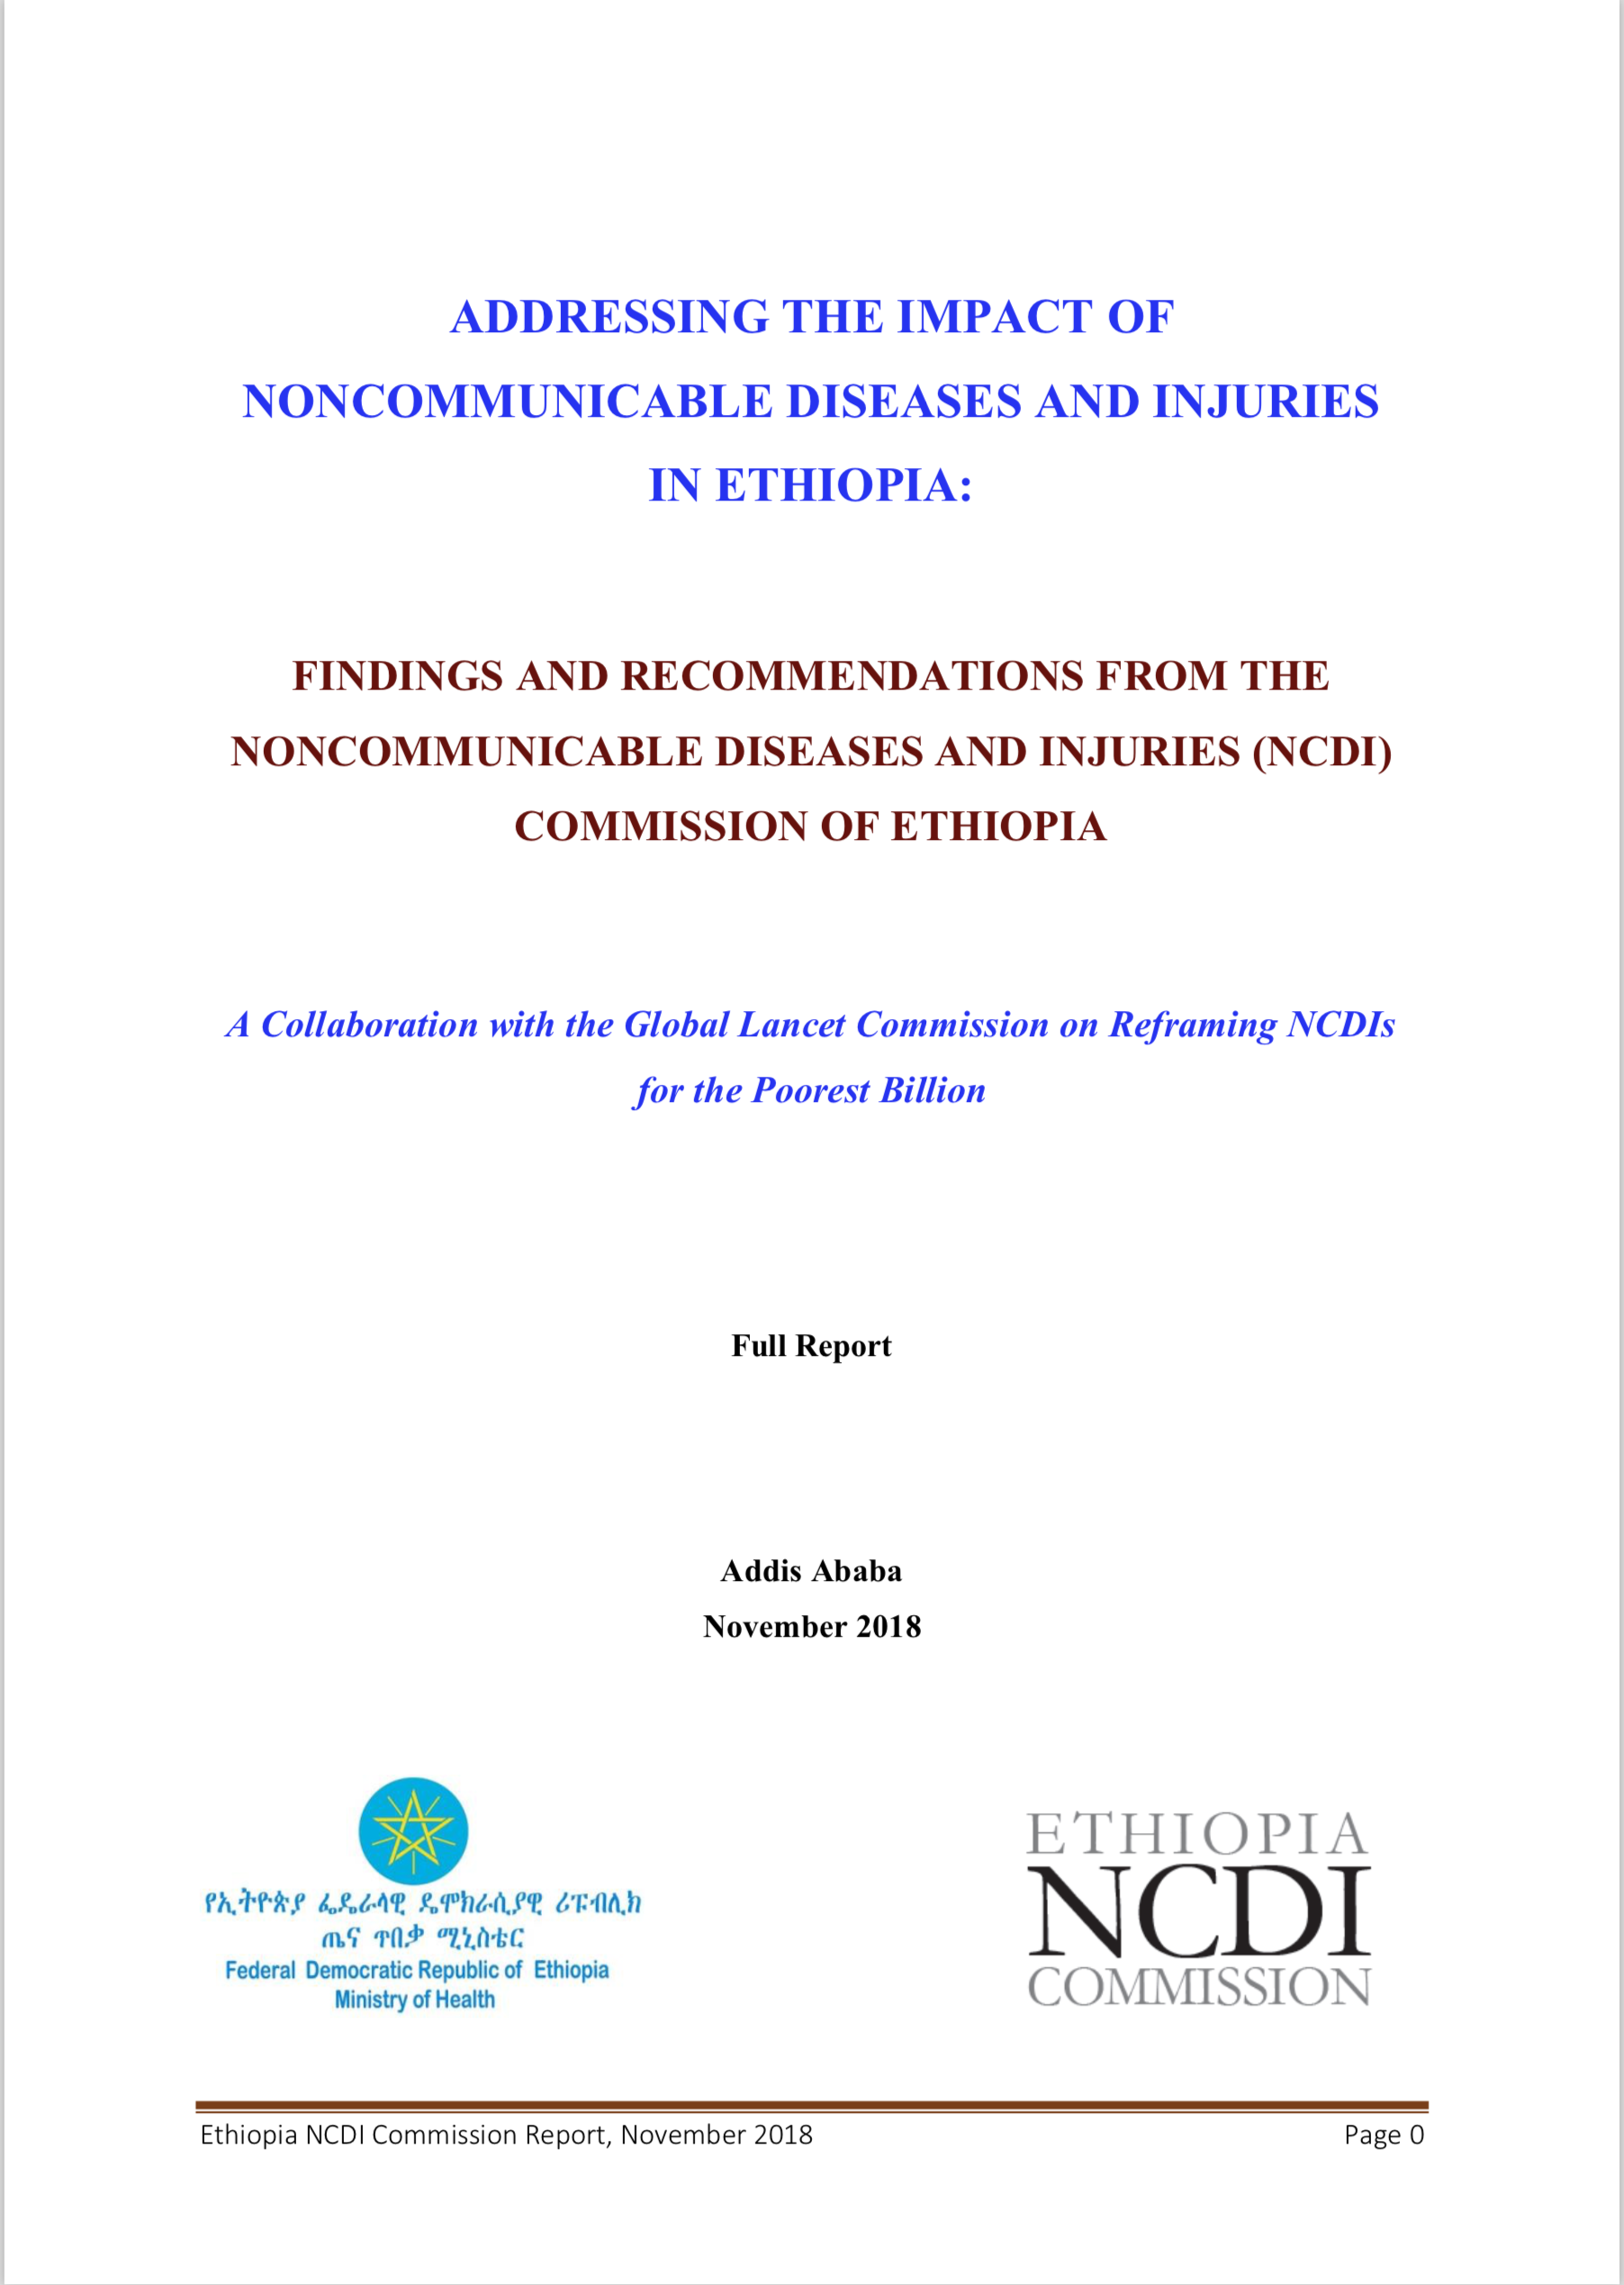 Ethiopia NCDI Commission Report